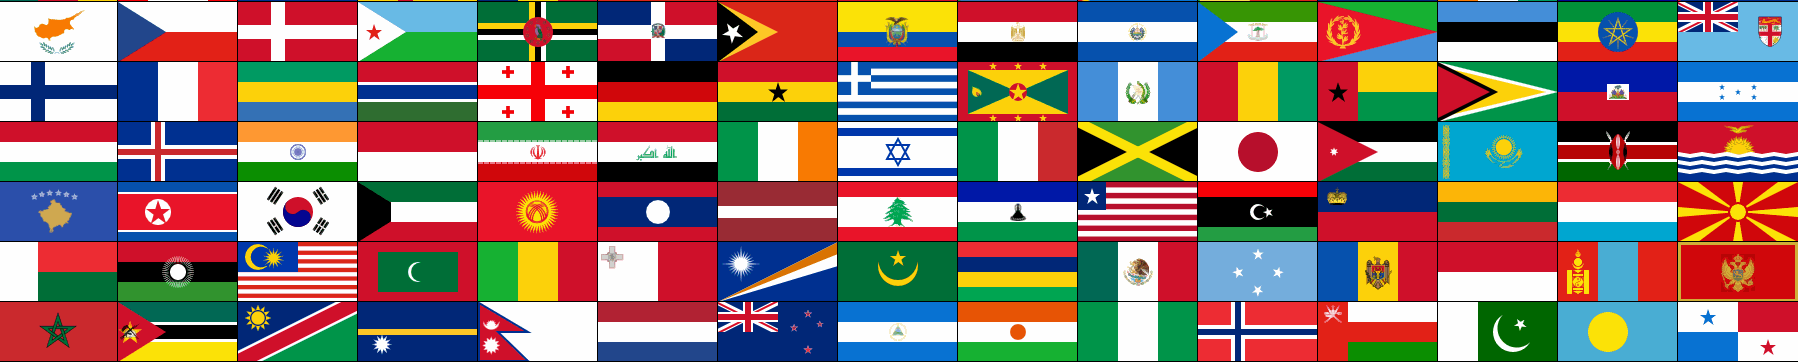 World Flags 11854 Hd Wallpapers in Travel n World - Imagesci.com